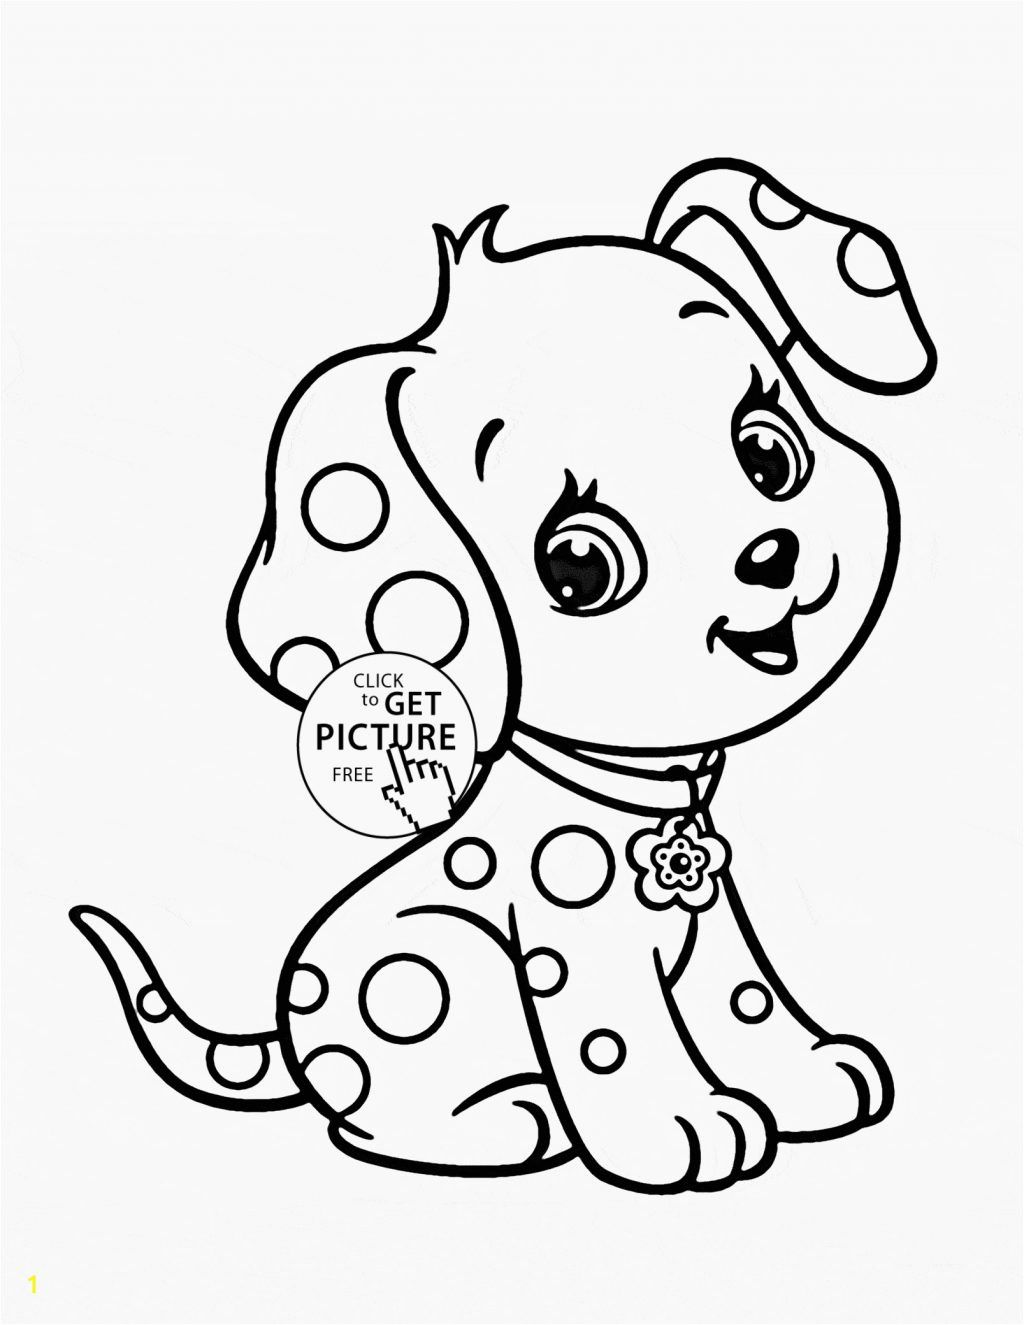 Ram Animal Kids Coloring Pages Coloring Pages For Kids Coloring Pages For Kids In 2020 Unicorn Coloring Pages Puppy Coloring Pages Halloween Coloring Pages